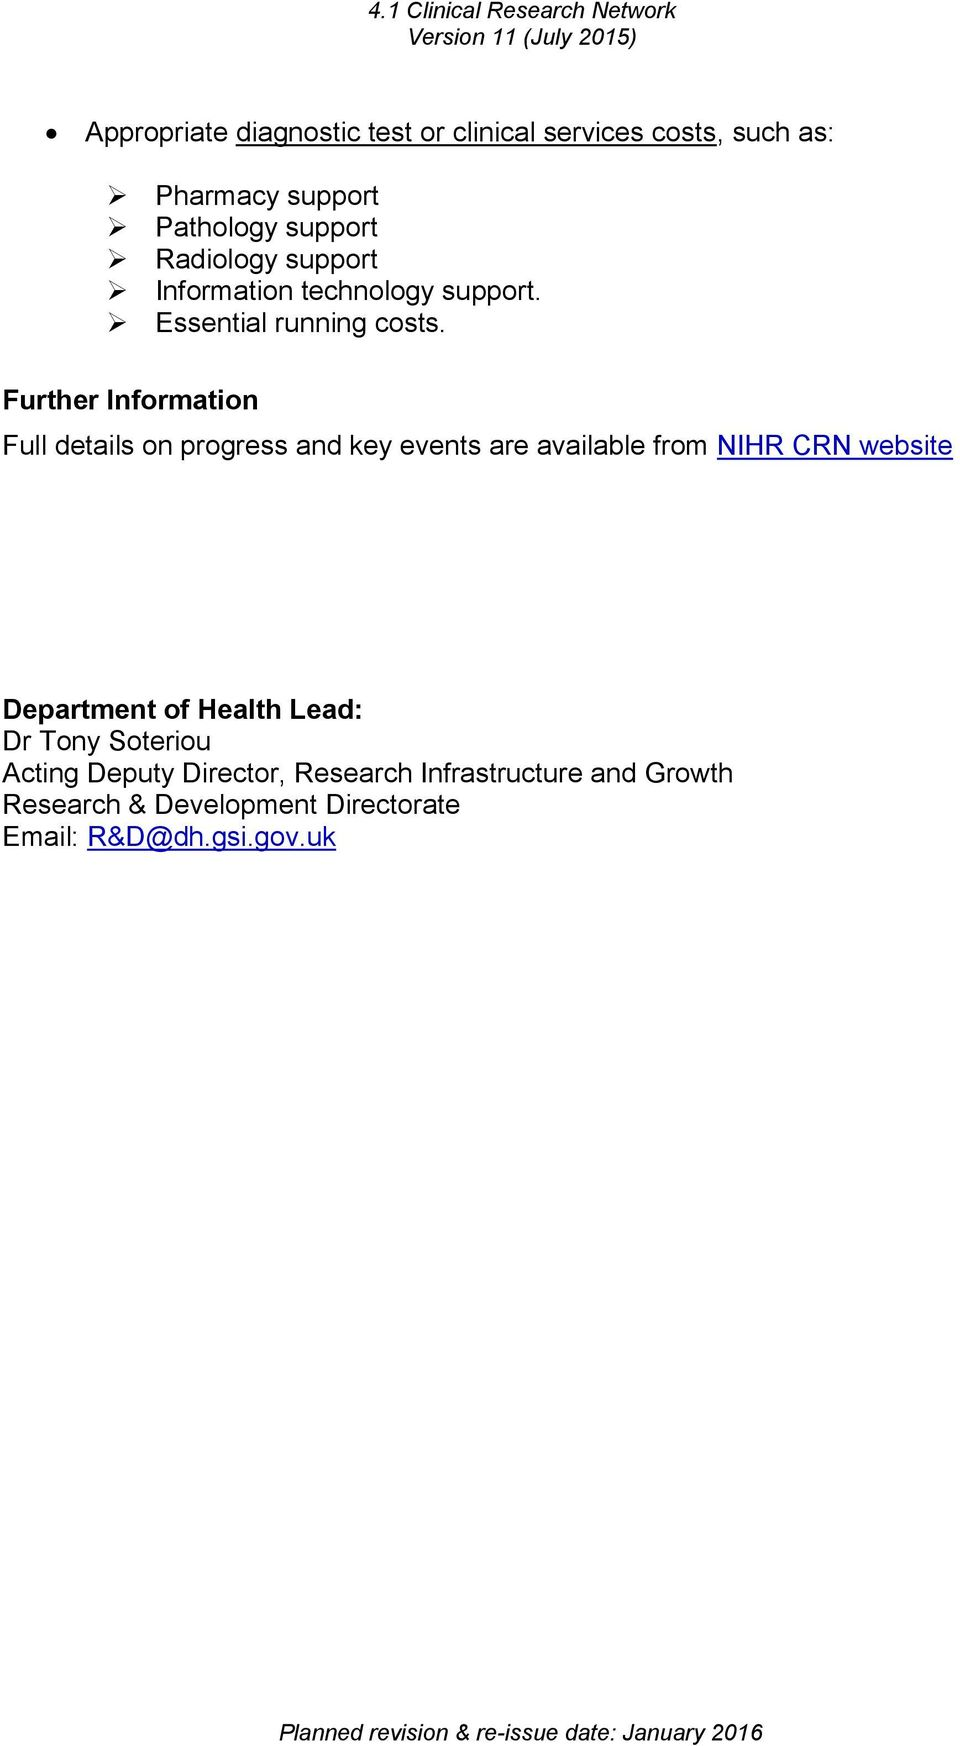 Further Information Full details on progress and key events are available from NIHR CRN website Department